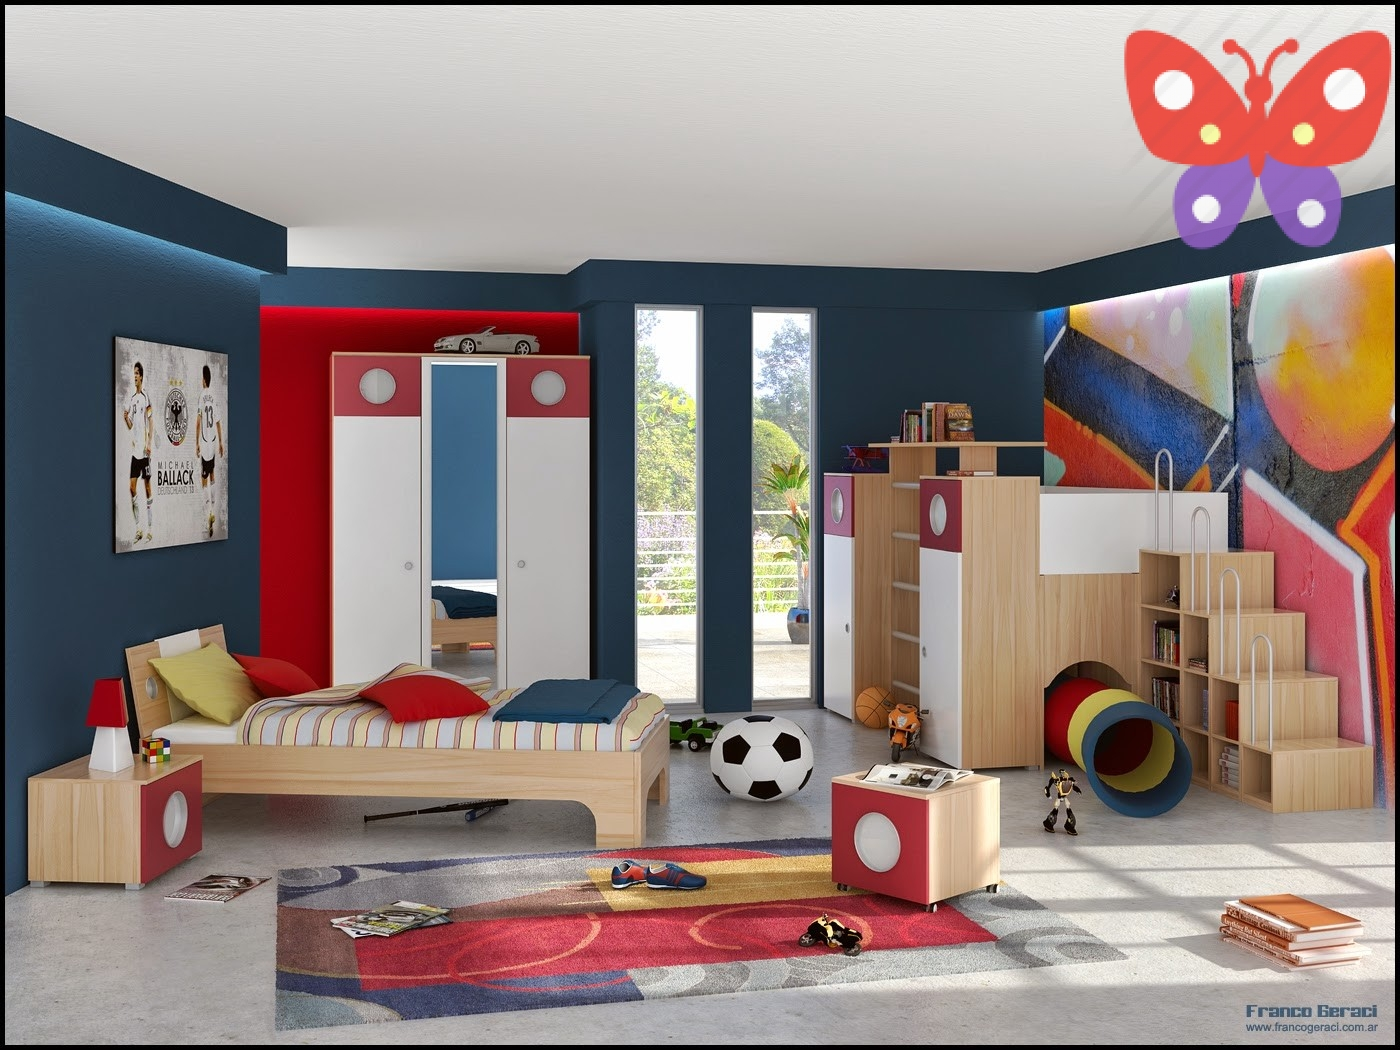 2Twin-Kids-Bedroom-Decorating-Ideas-for-Boys-Interior-Furniture-